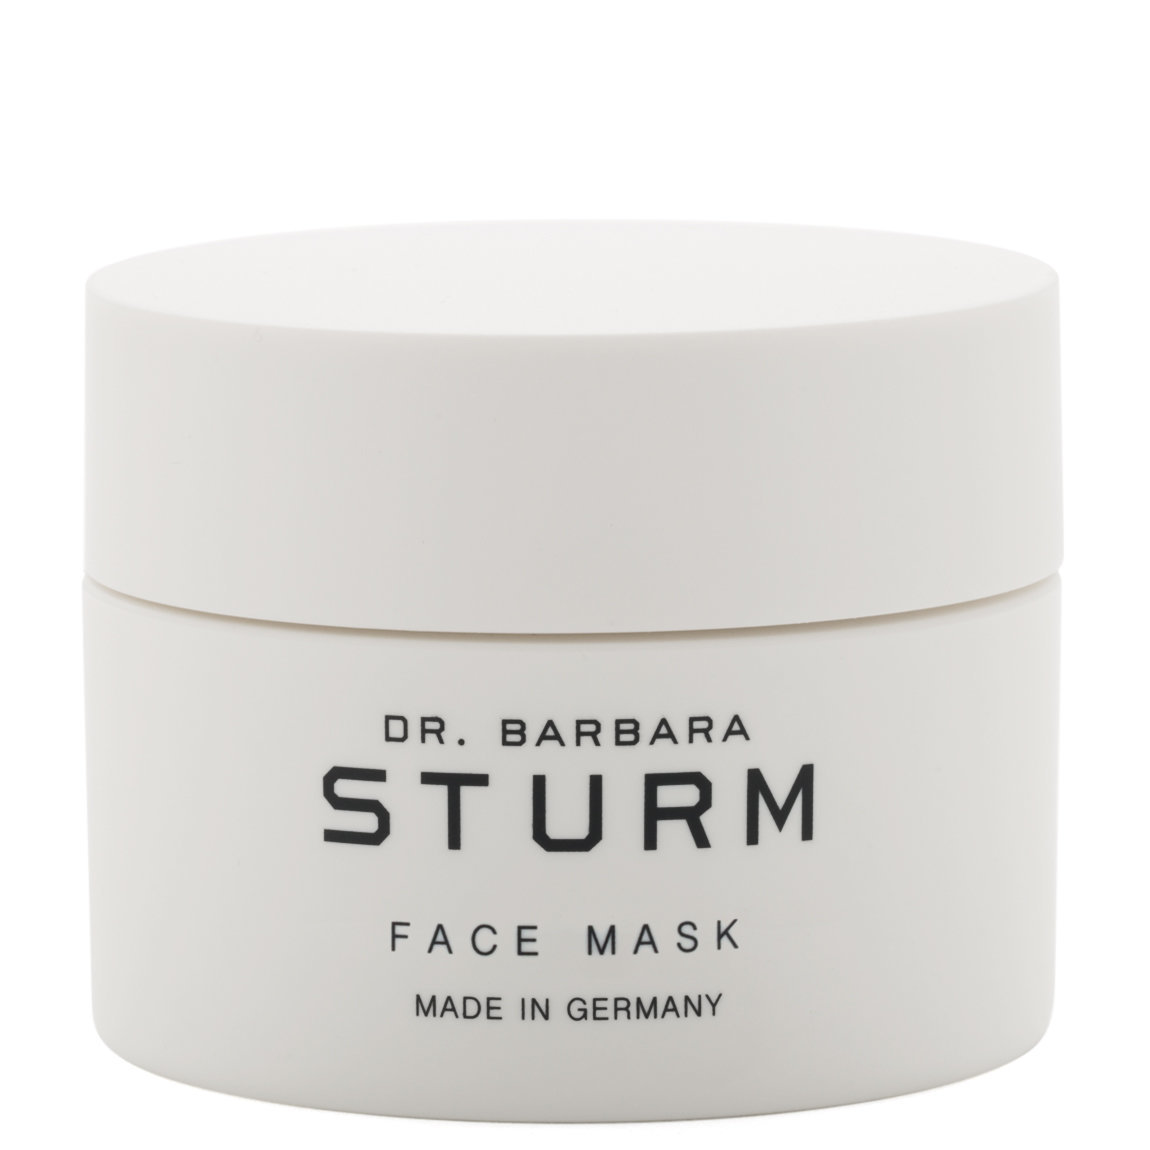 Dr. Barbara Sturm Face Mask product smear.